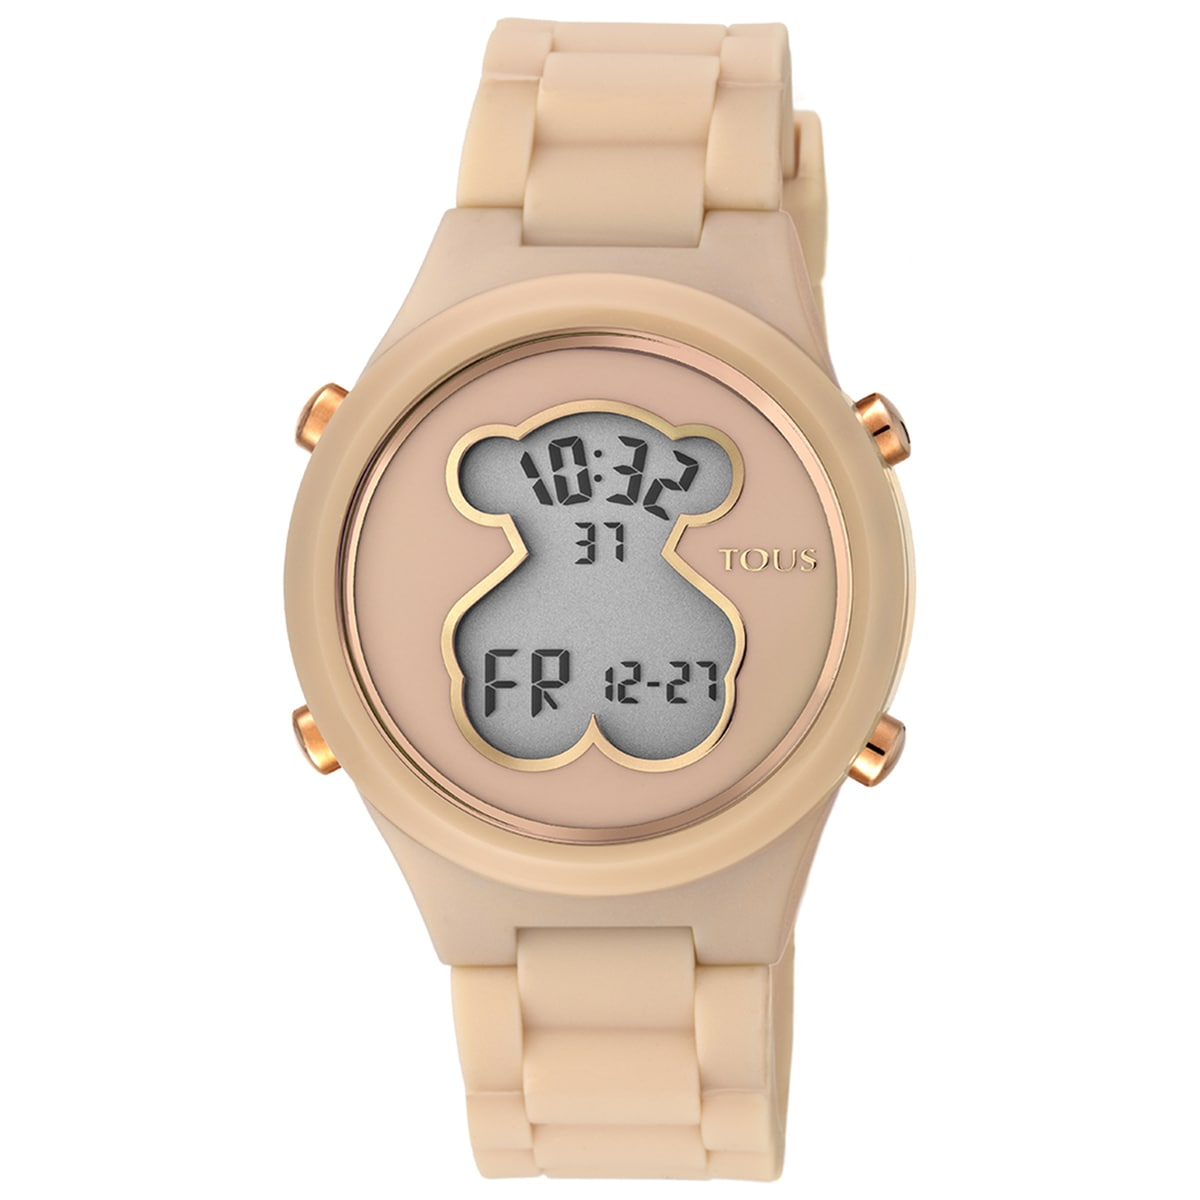 Polycarbonate D-Bear Watch with nude colored silicone strap